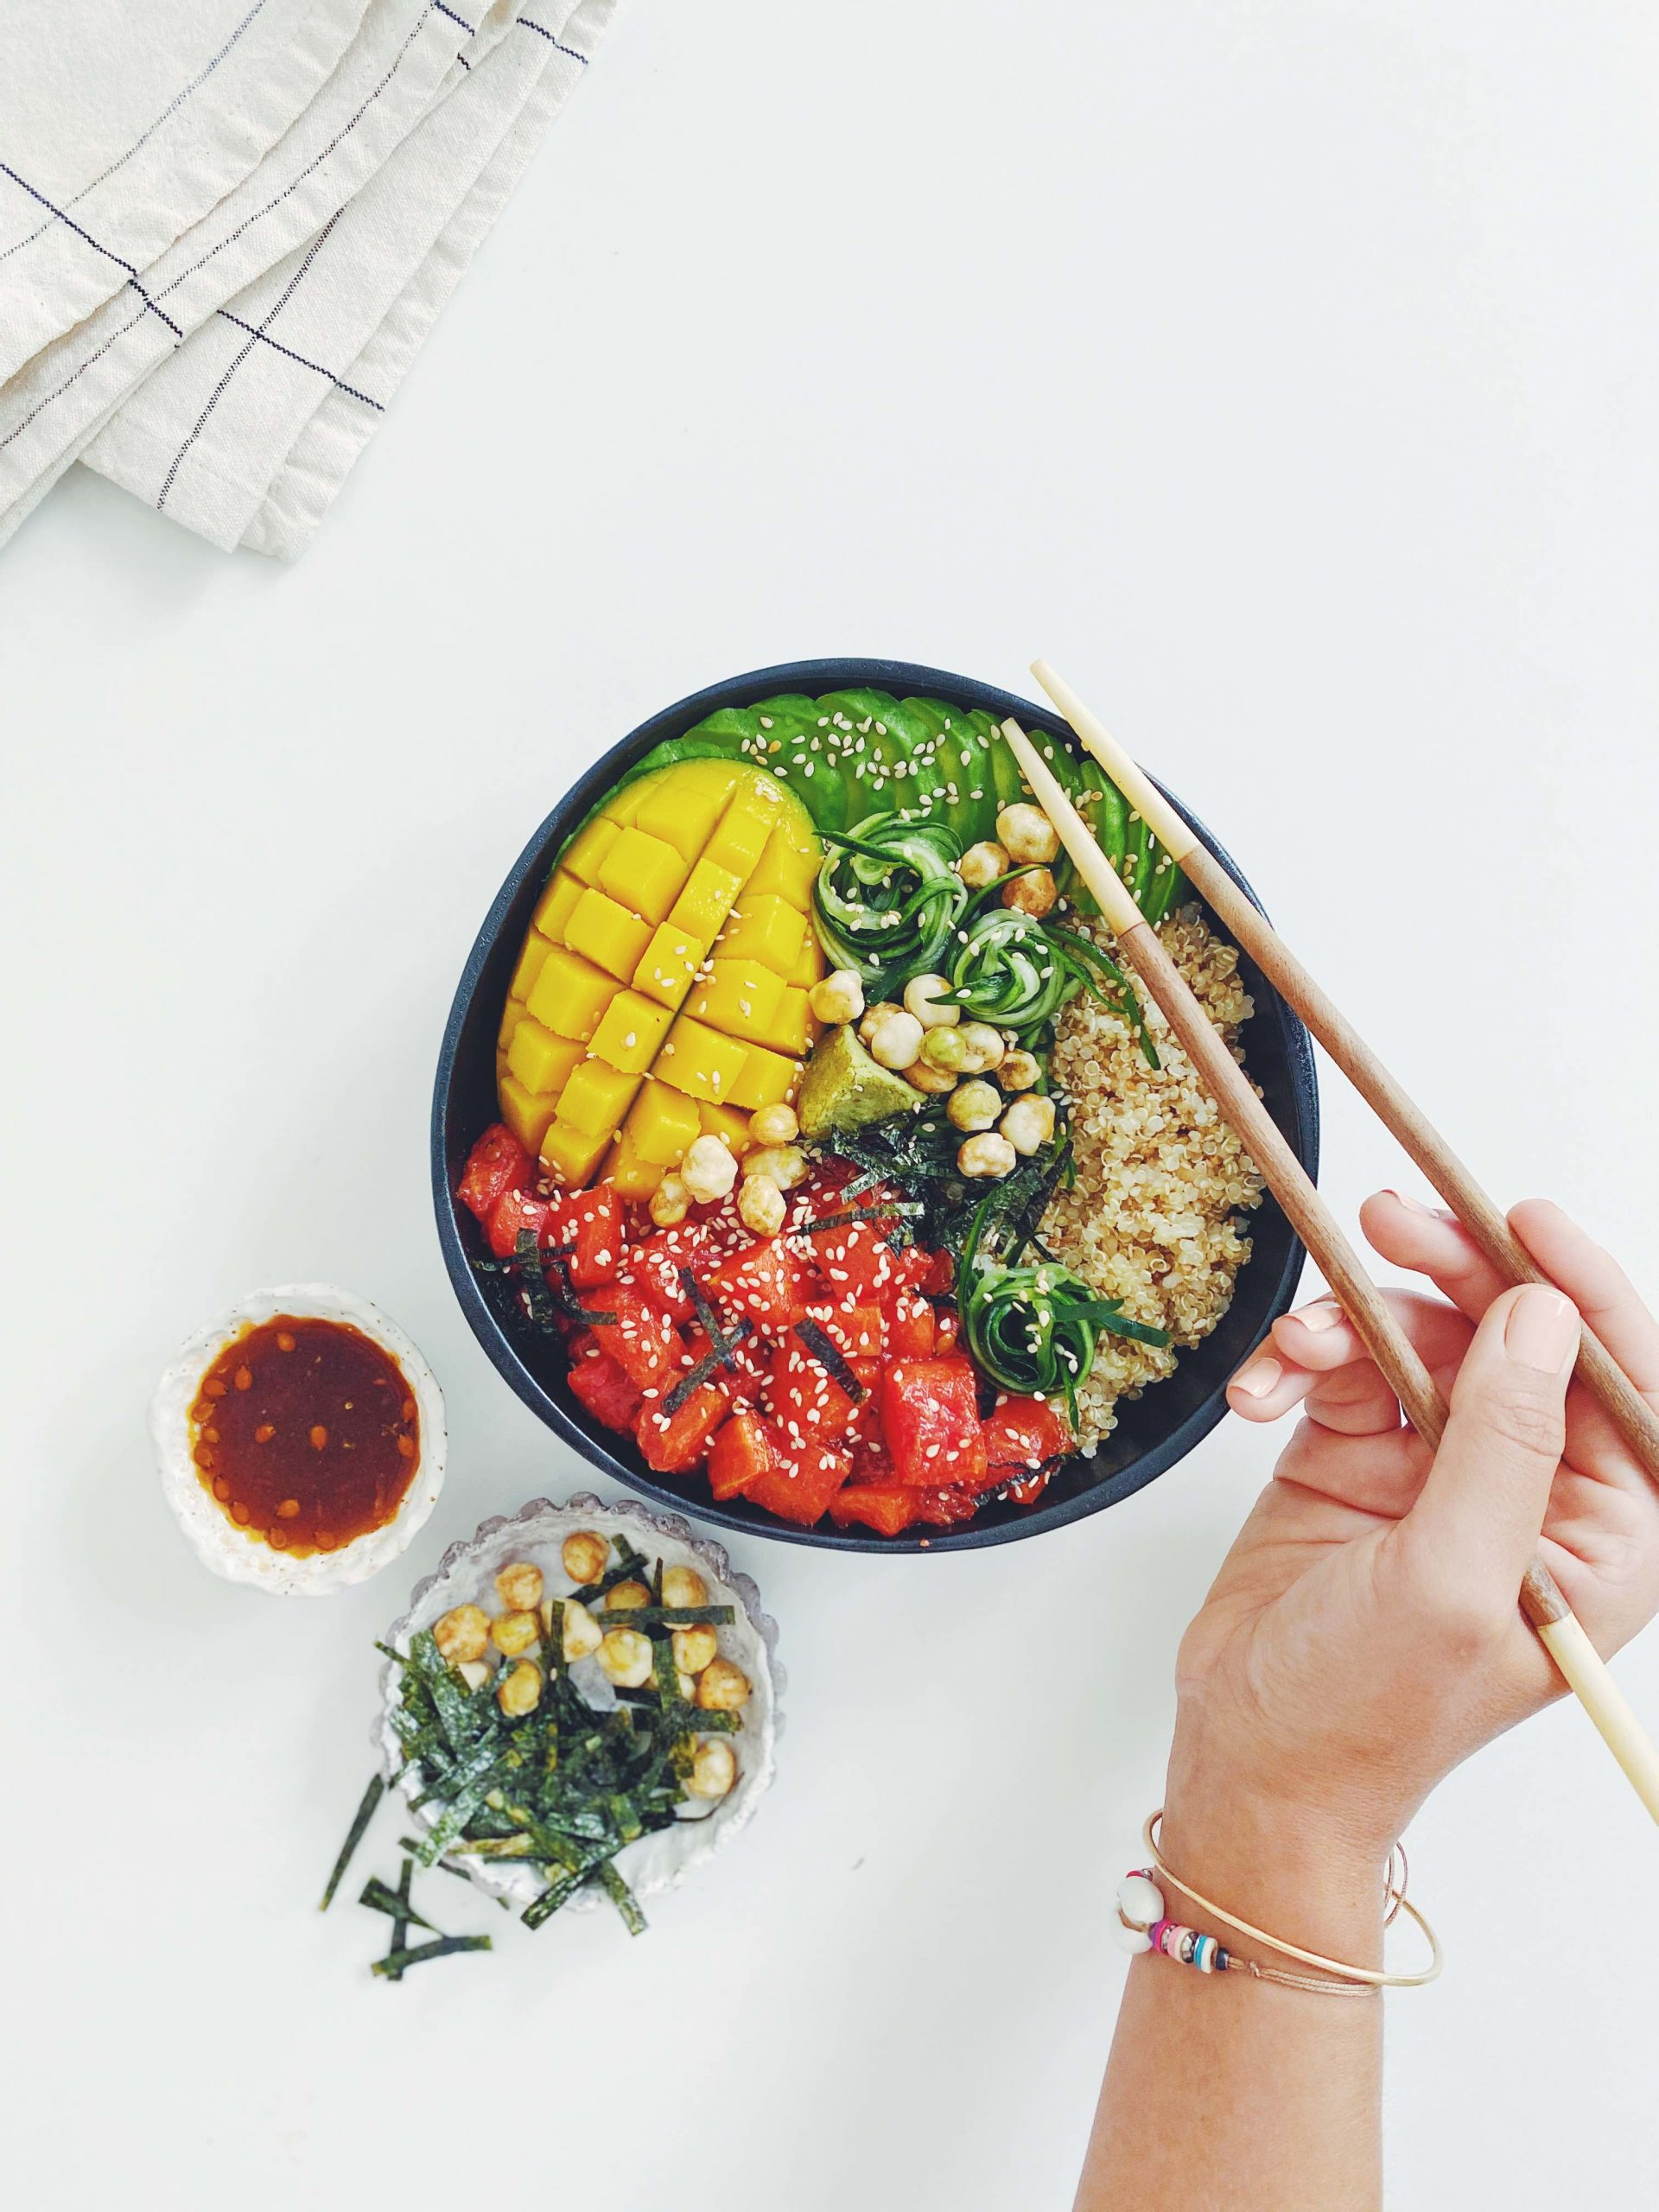 vegan tuna poke bowl | please consider | joana limao